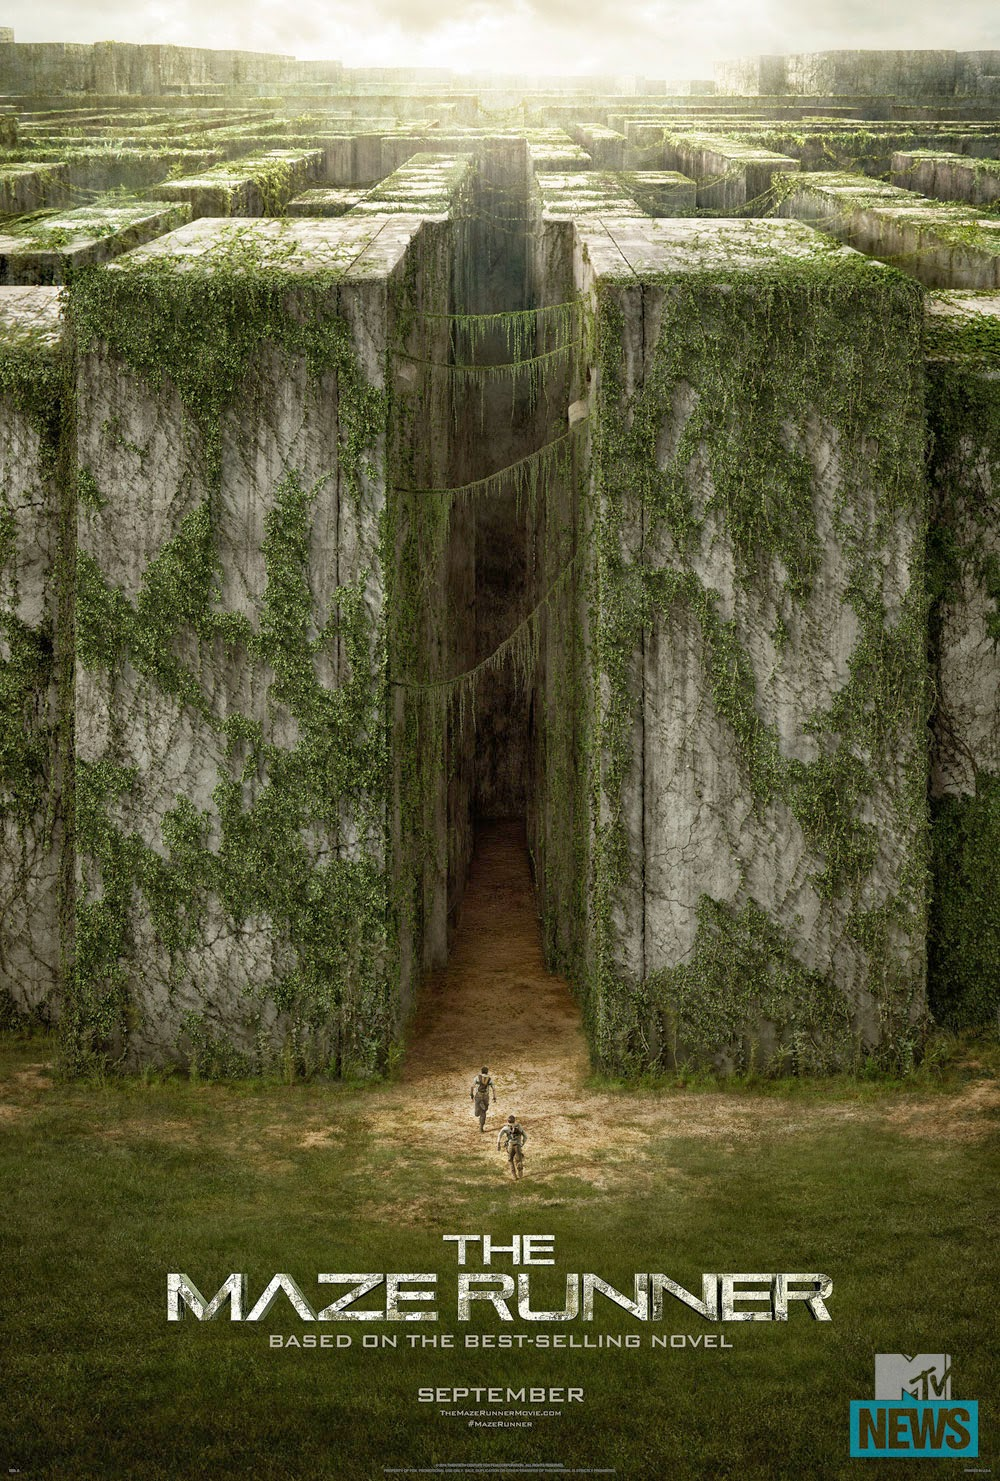 The Maze Runner News